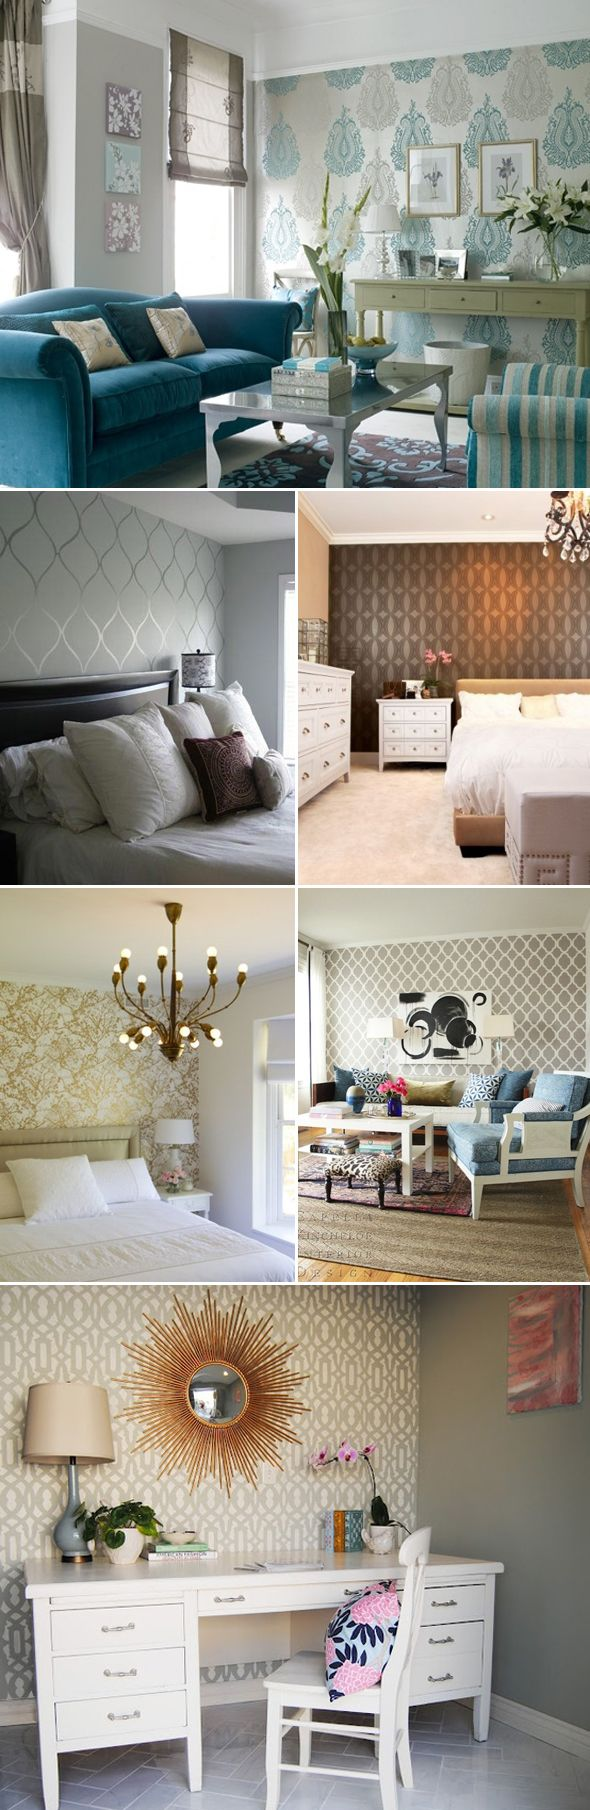 Decorate with an accent wall!                                                                                                                                                      More